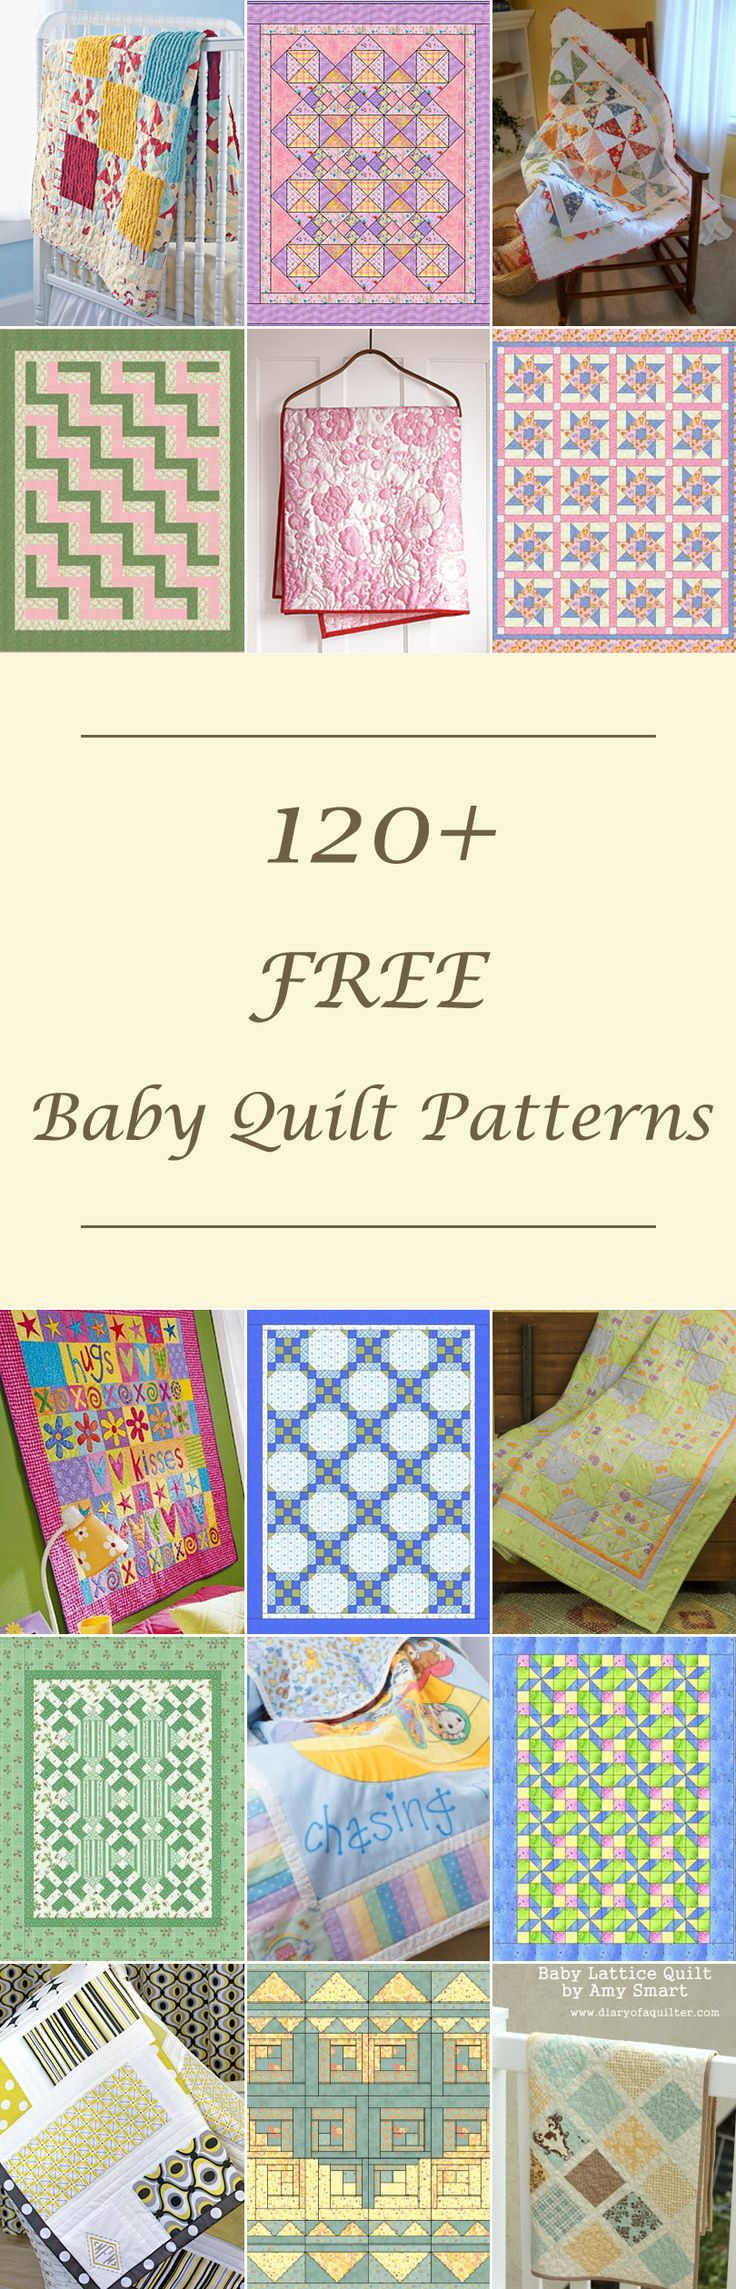 Baby crib quilt patterns free - Lots Of Free Baby Quilt Patterns Tutorials Girl Boy And Unisex Designs